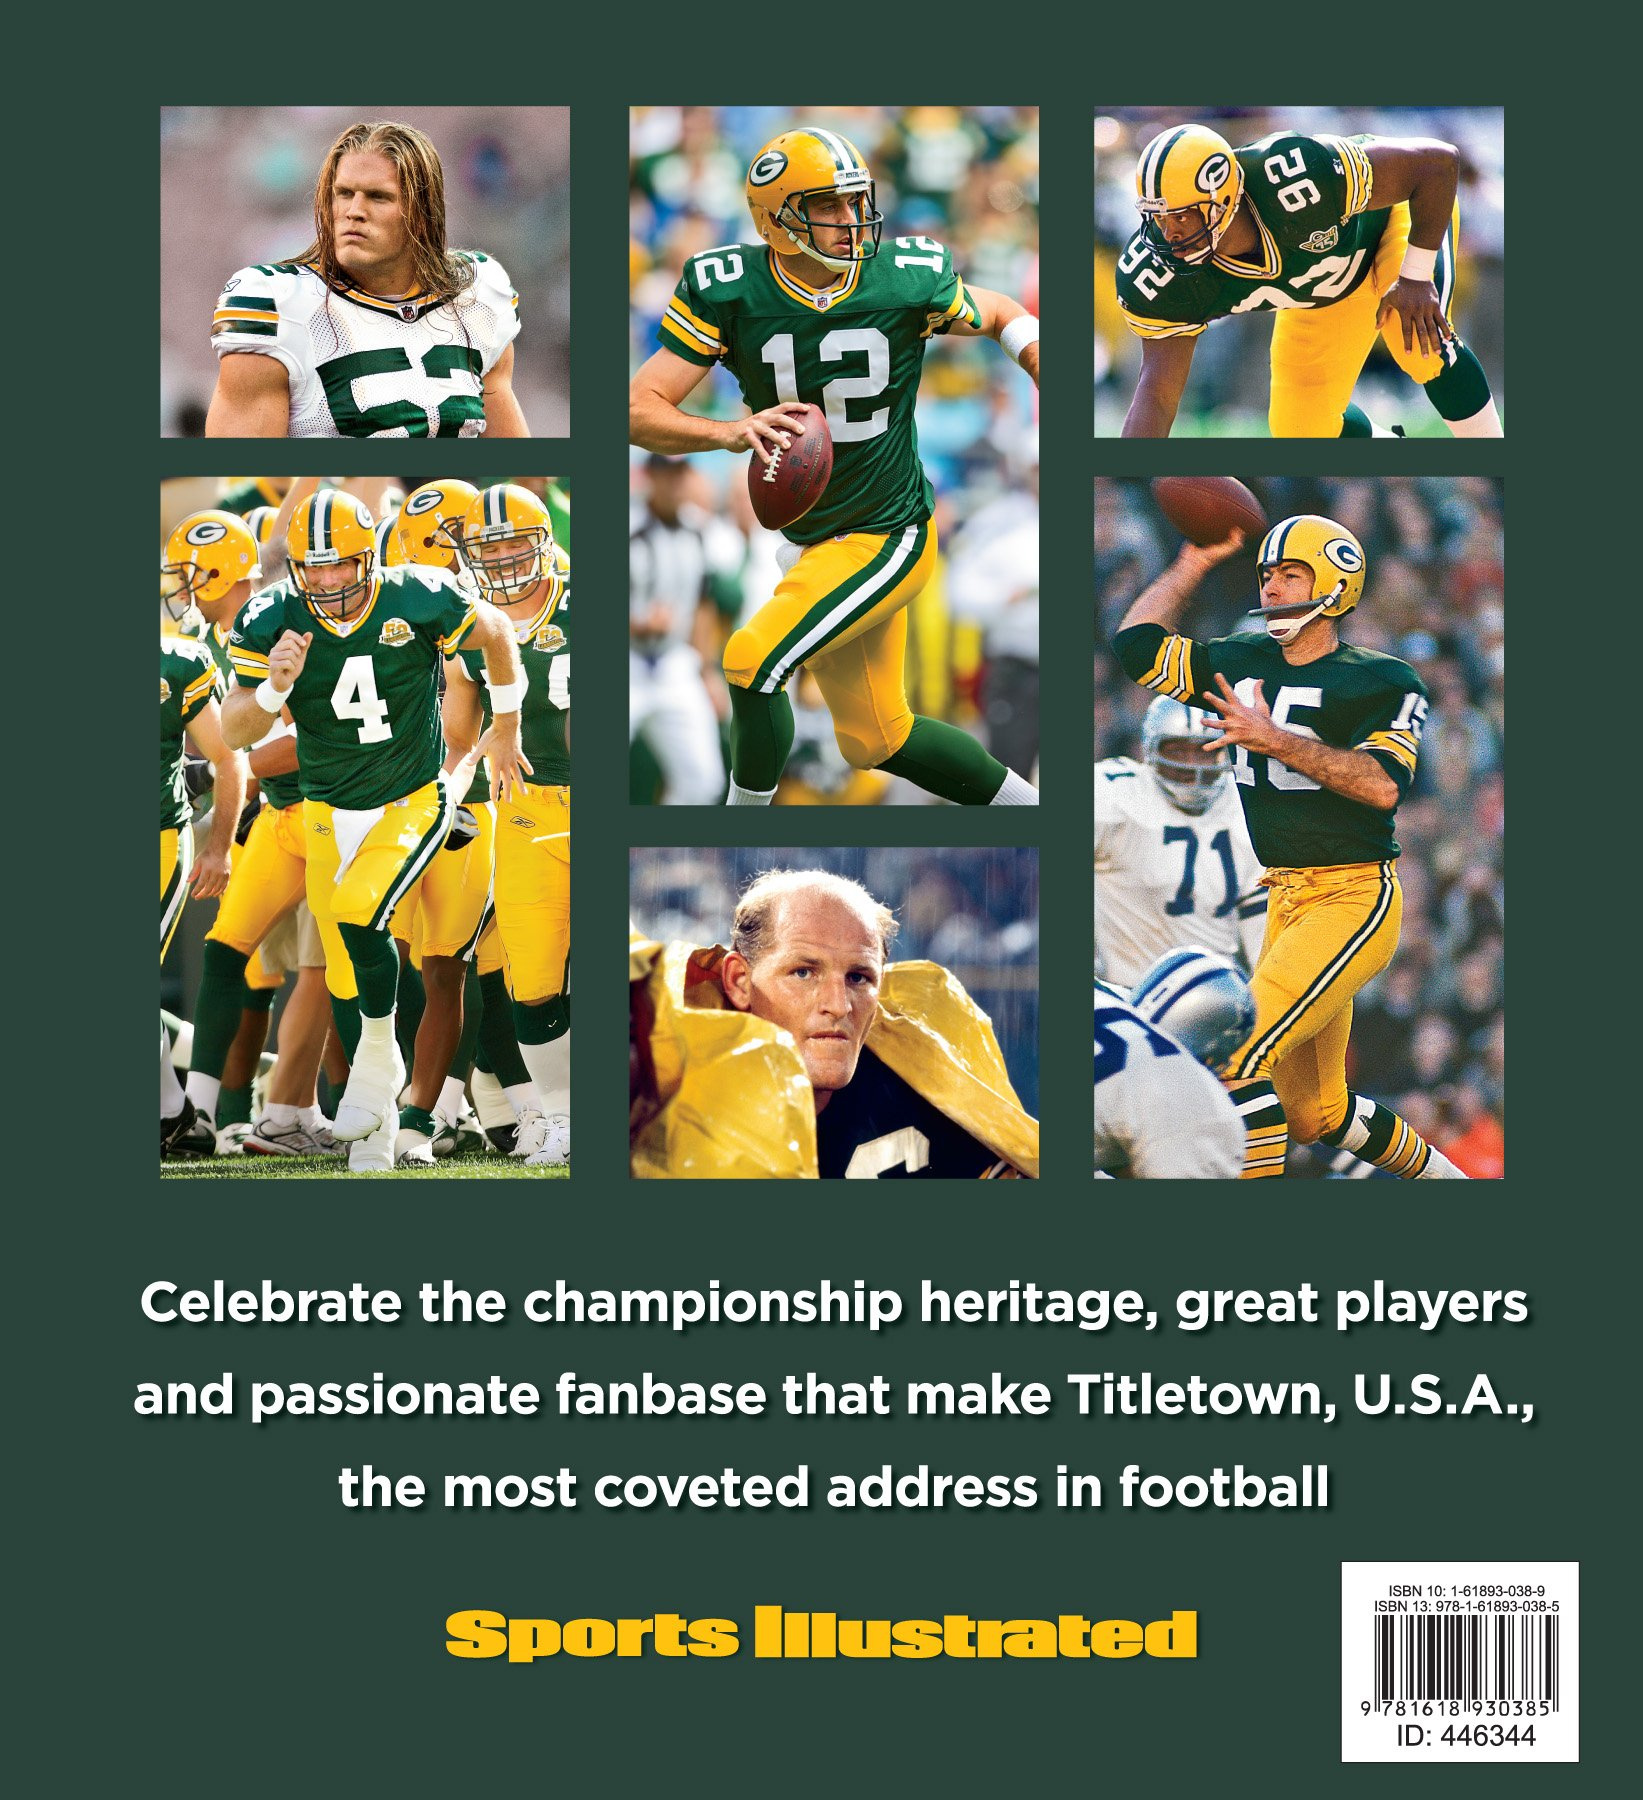 Sports Illustrated PACKERS: Green, Gold and Glory: The Editors of Sports  Illustrated: 9781618930385: Amazon.com: Books